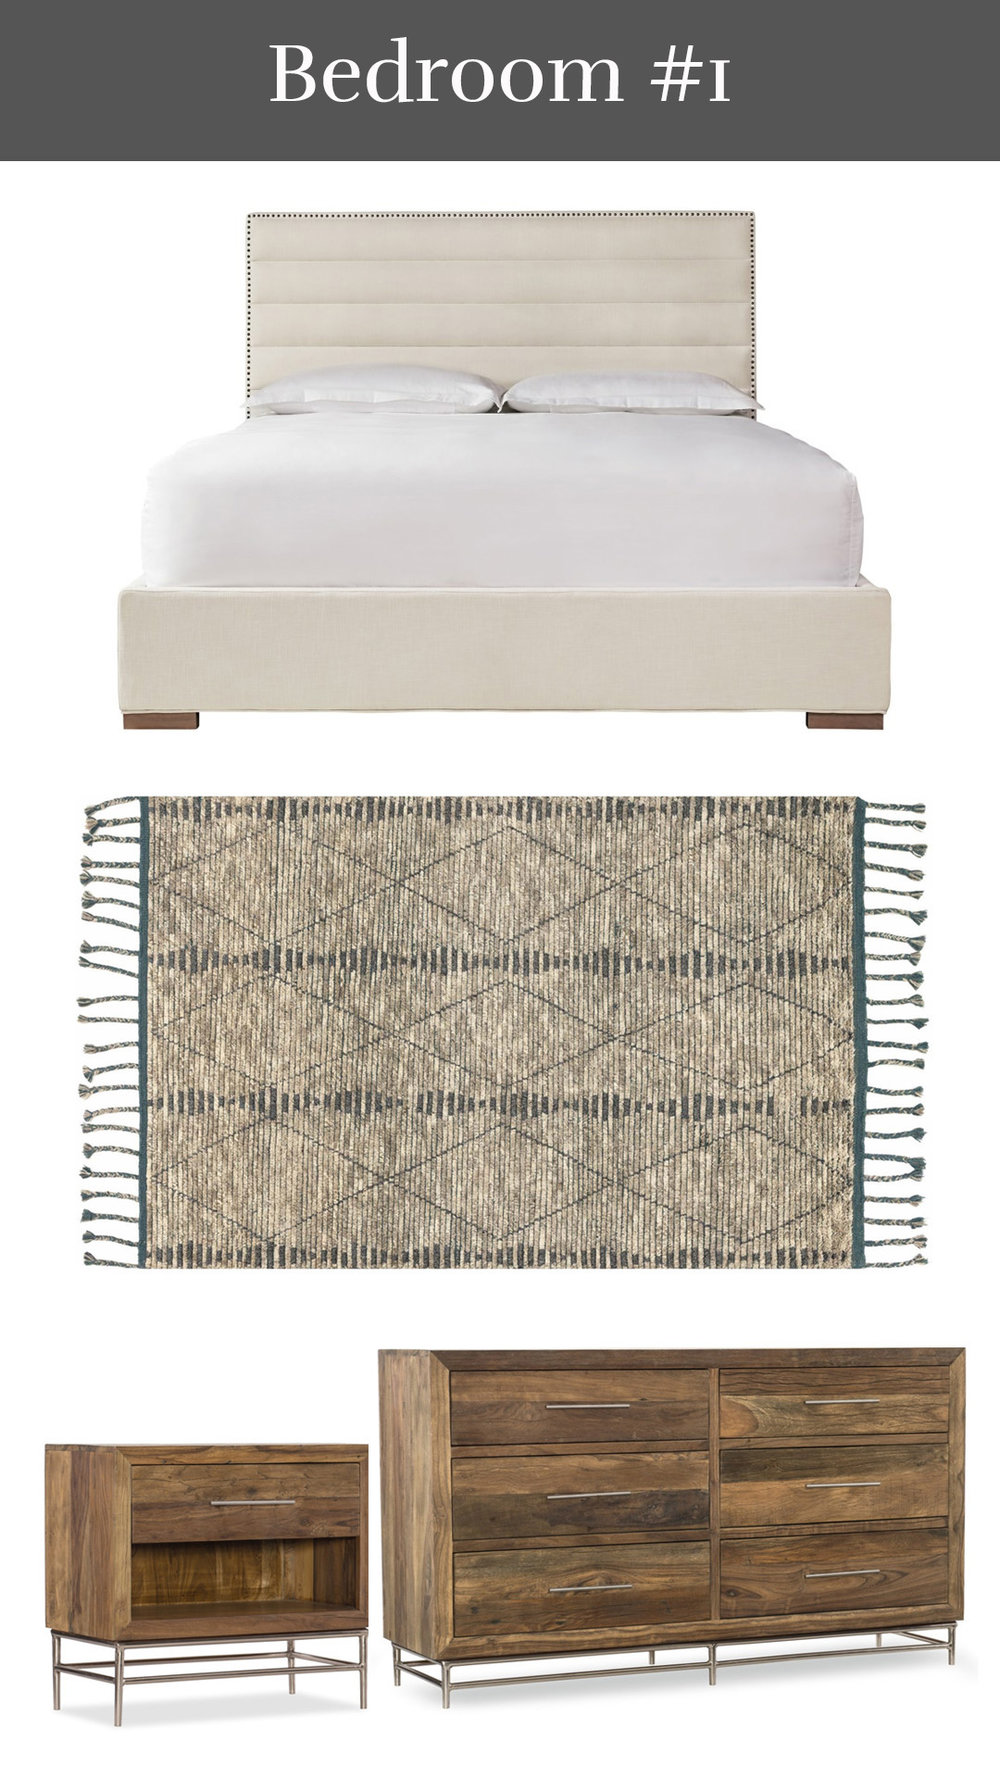 Bohemian Beauty - Synchronicity Upholstered Bed + Tulum Rug + L'Usine Nightstand & Dresser